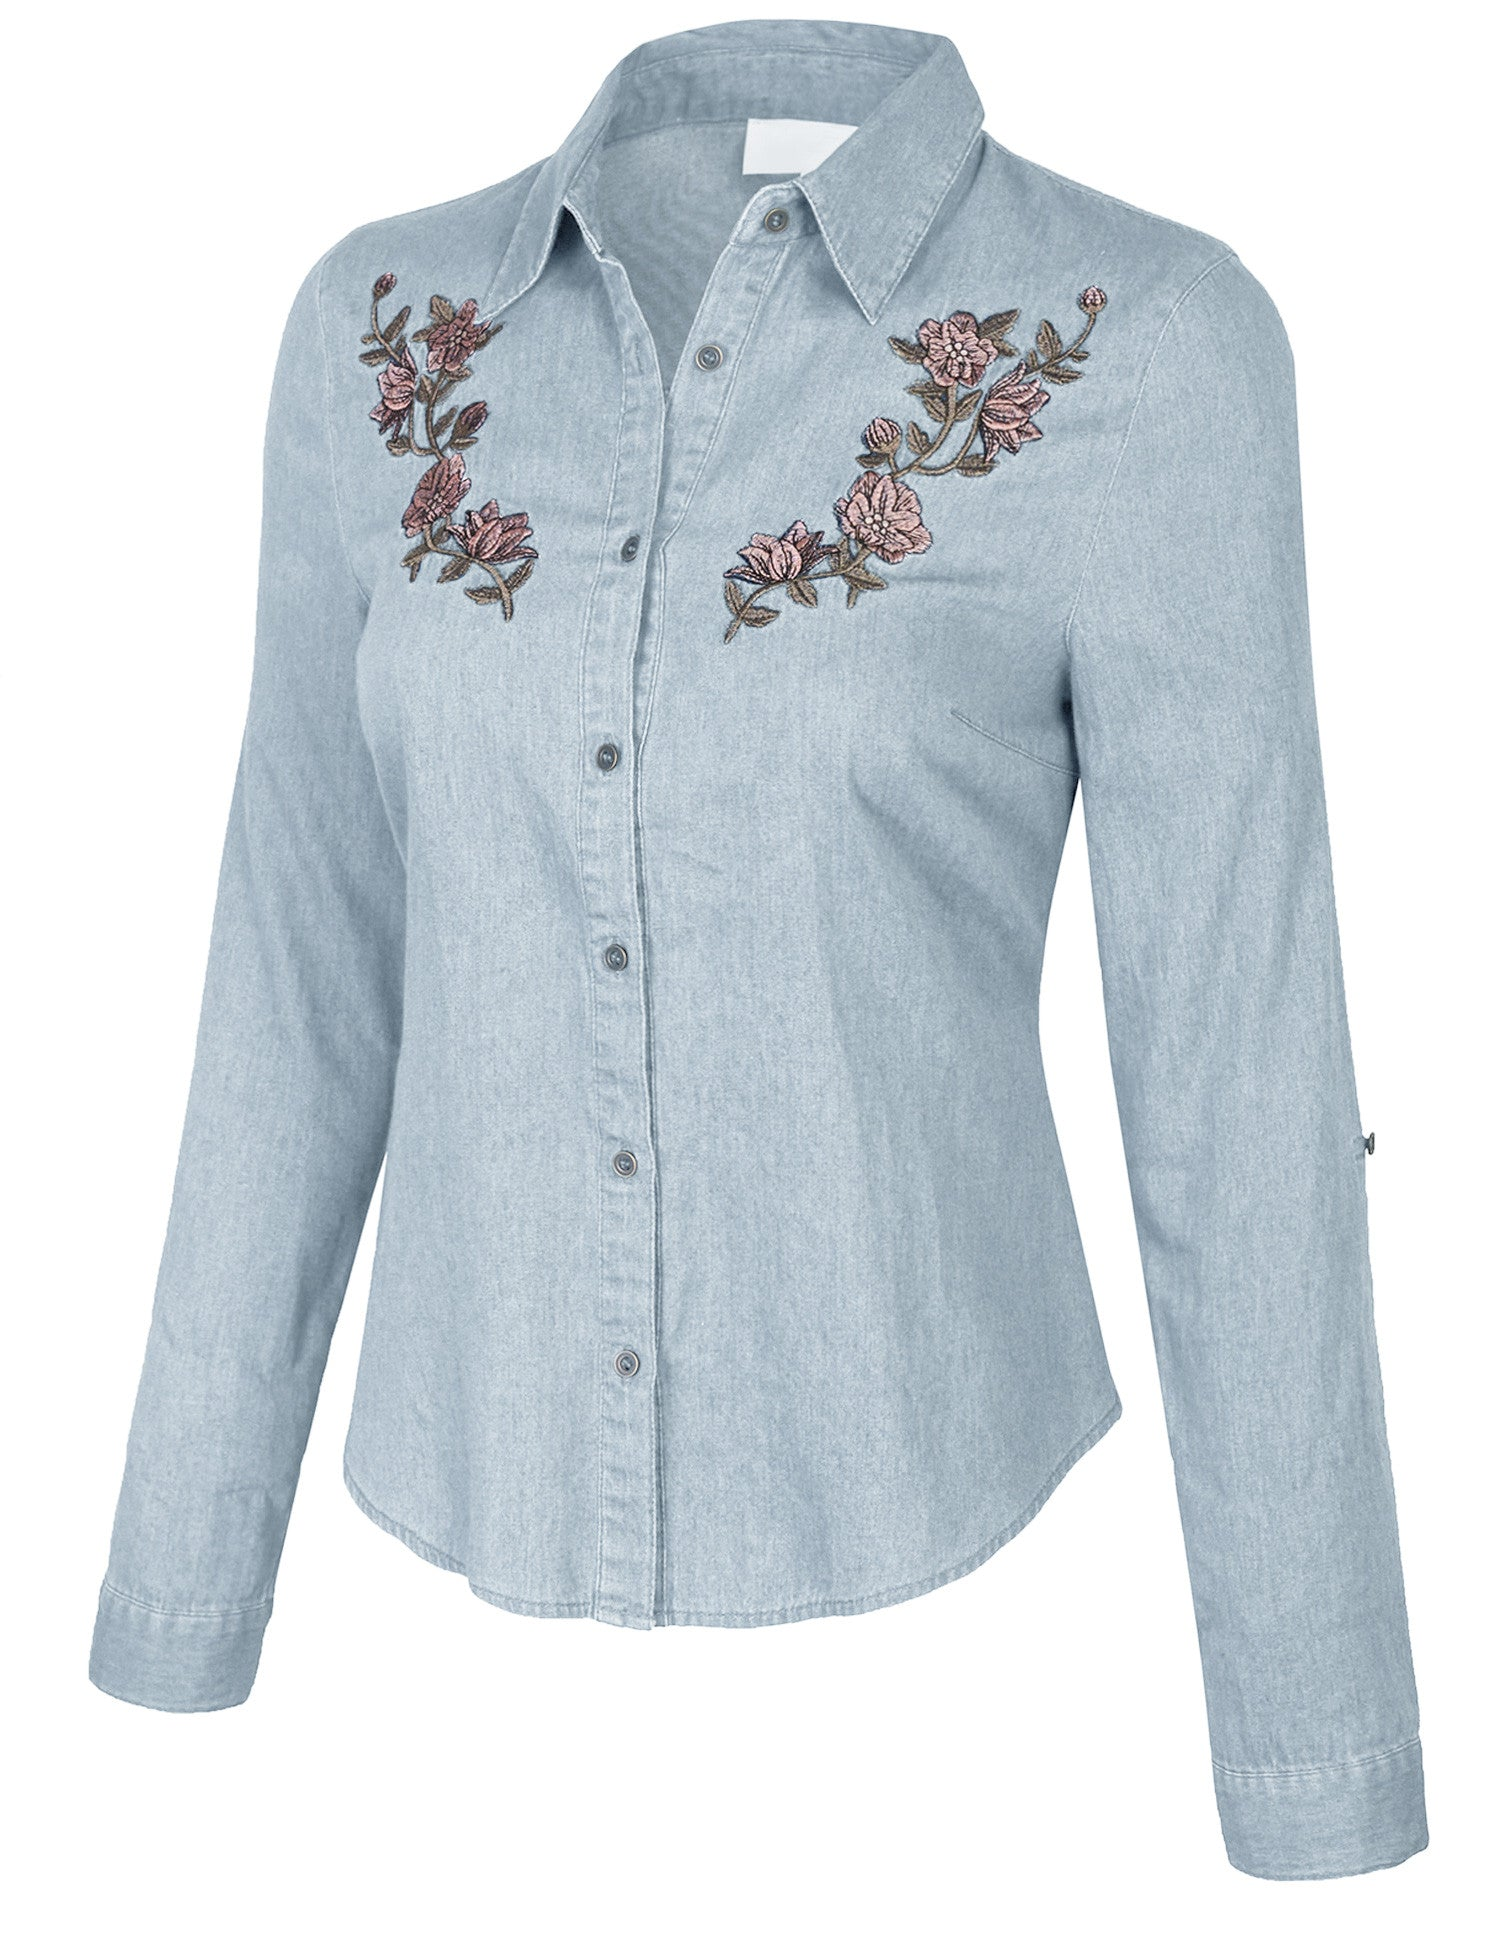 76b3142903 Womens Long Sleeve Denim Shirt Fitted Blouse with Embroidery - KOGMO